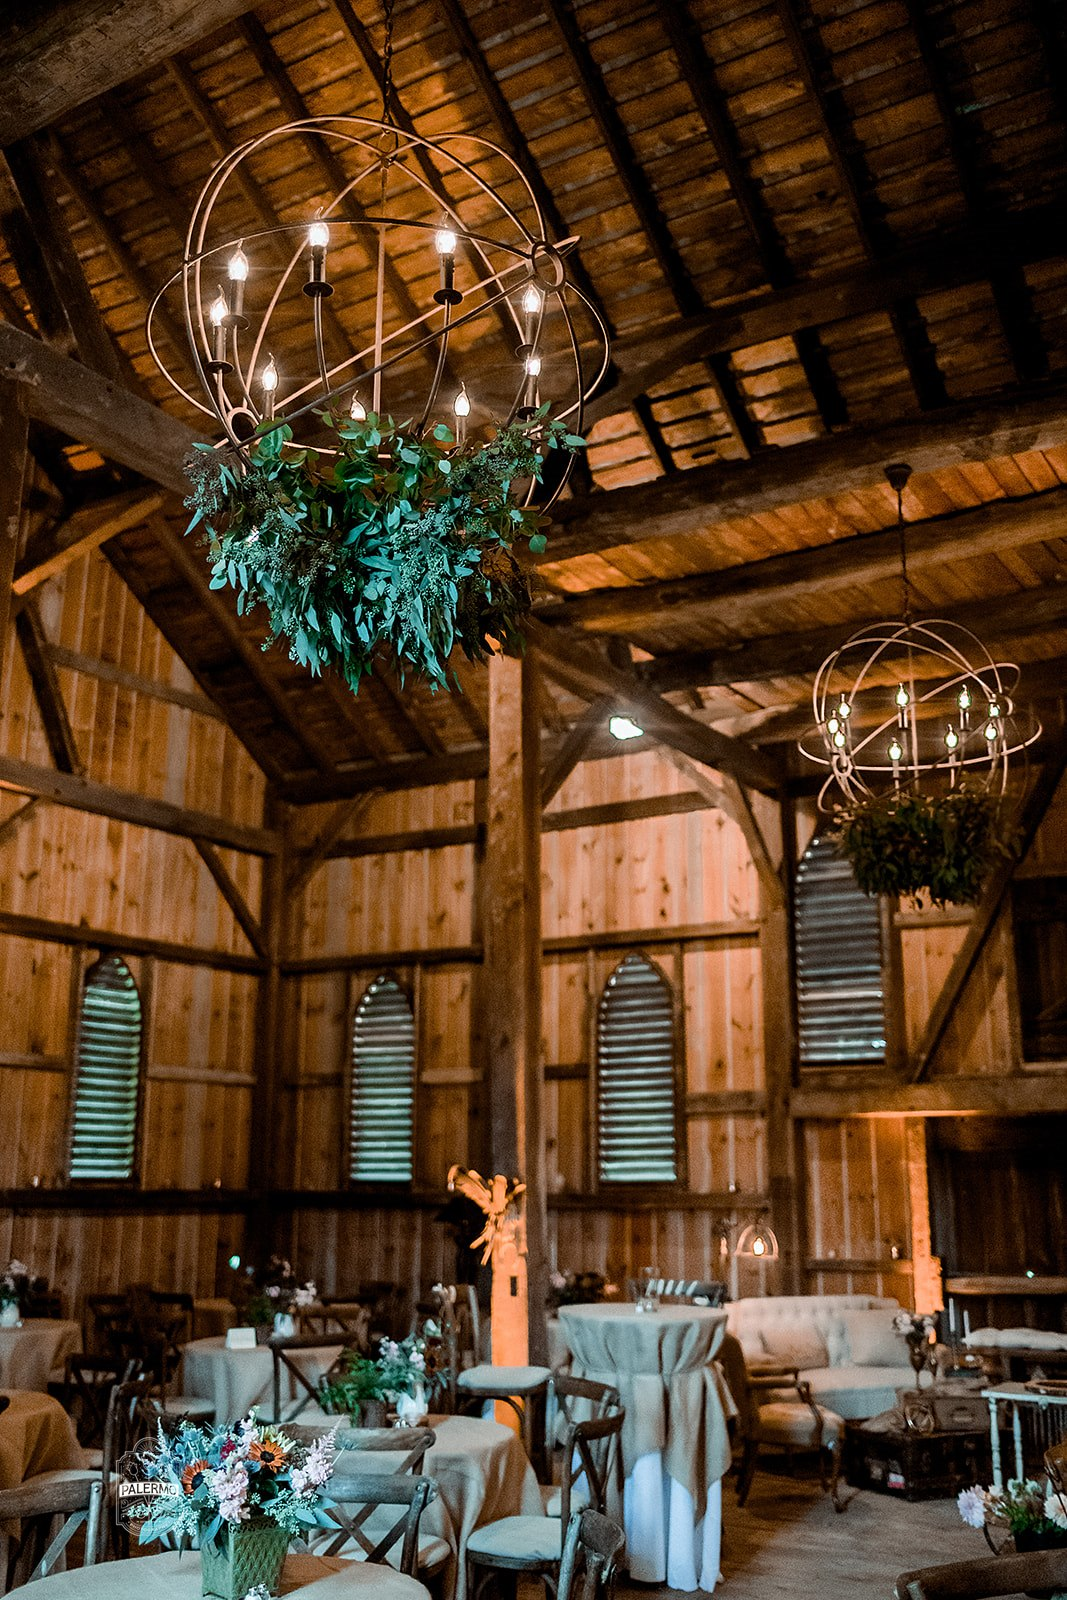 Rustic lights for wedding lighting and wedding reception decor at fall barn wedding in Pittsburgh, PA planned by Exhale Events. Find more wedding inspiration at exhale-events.com!